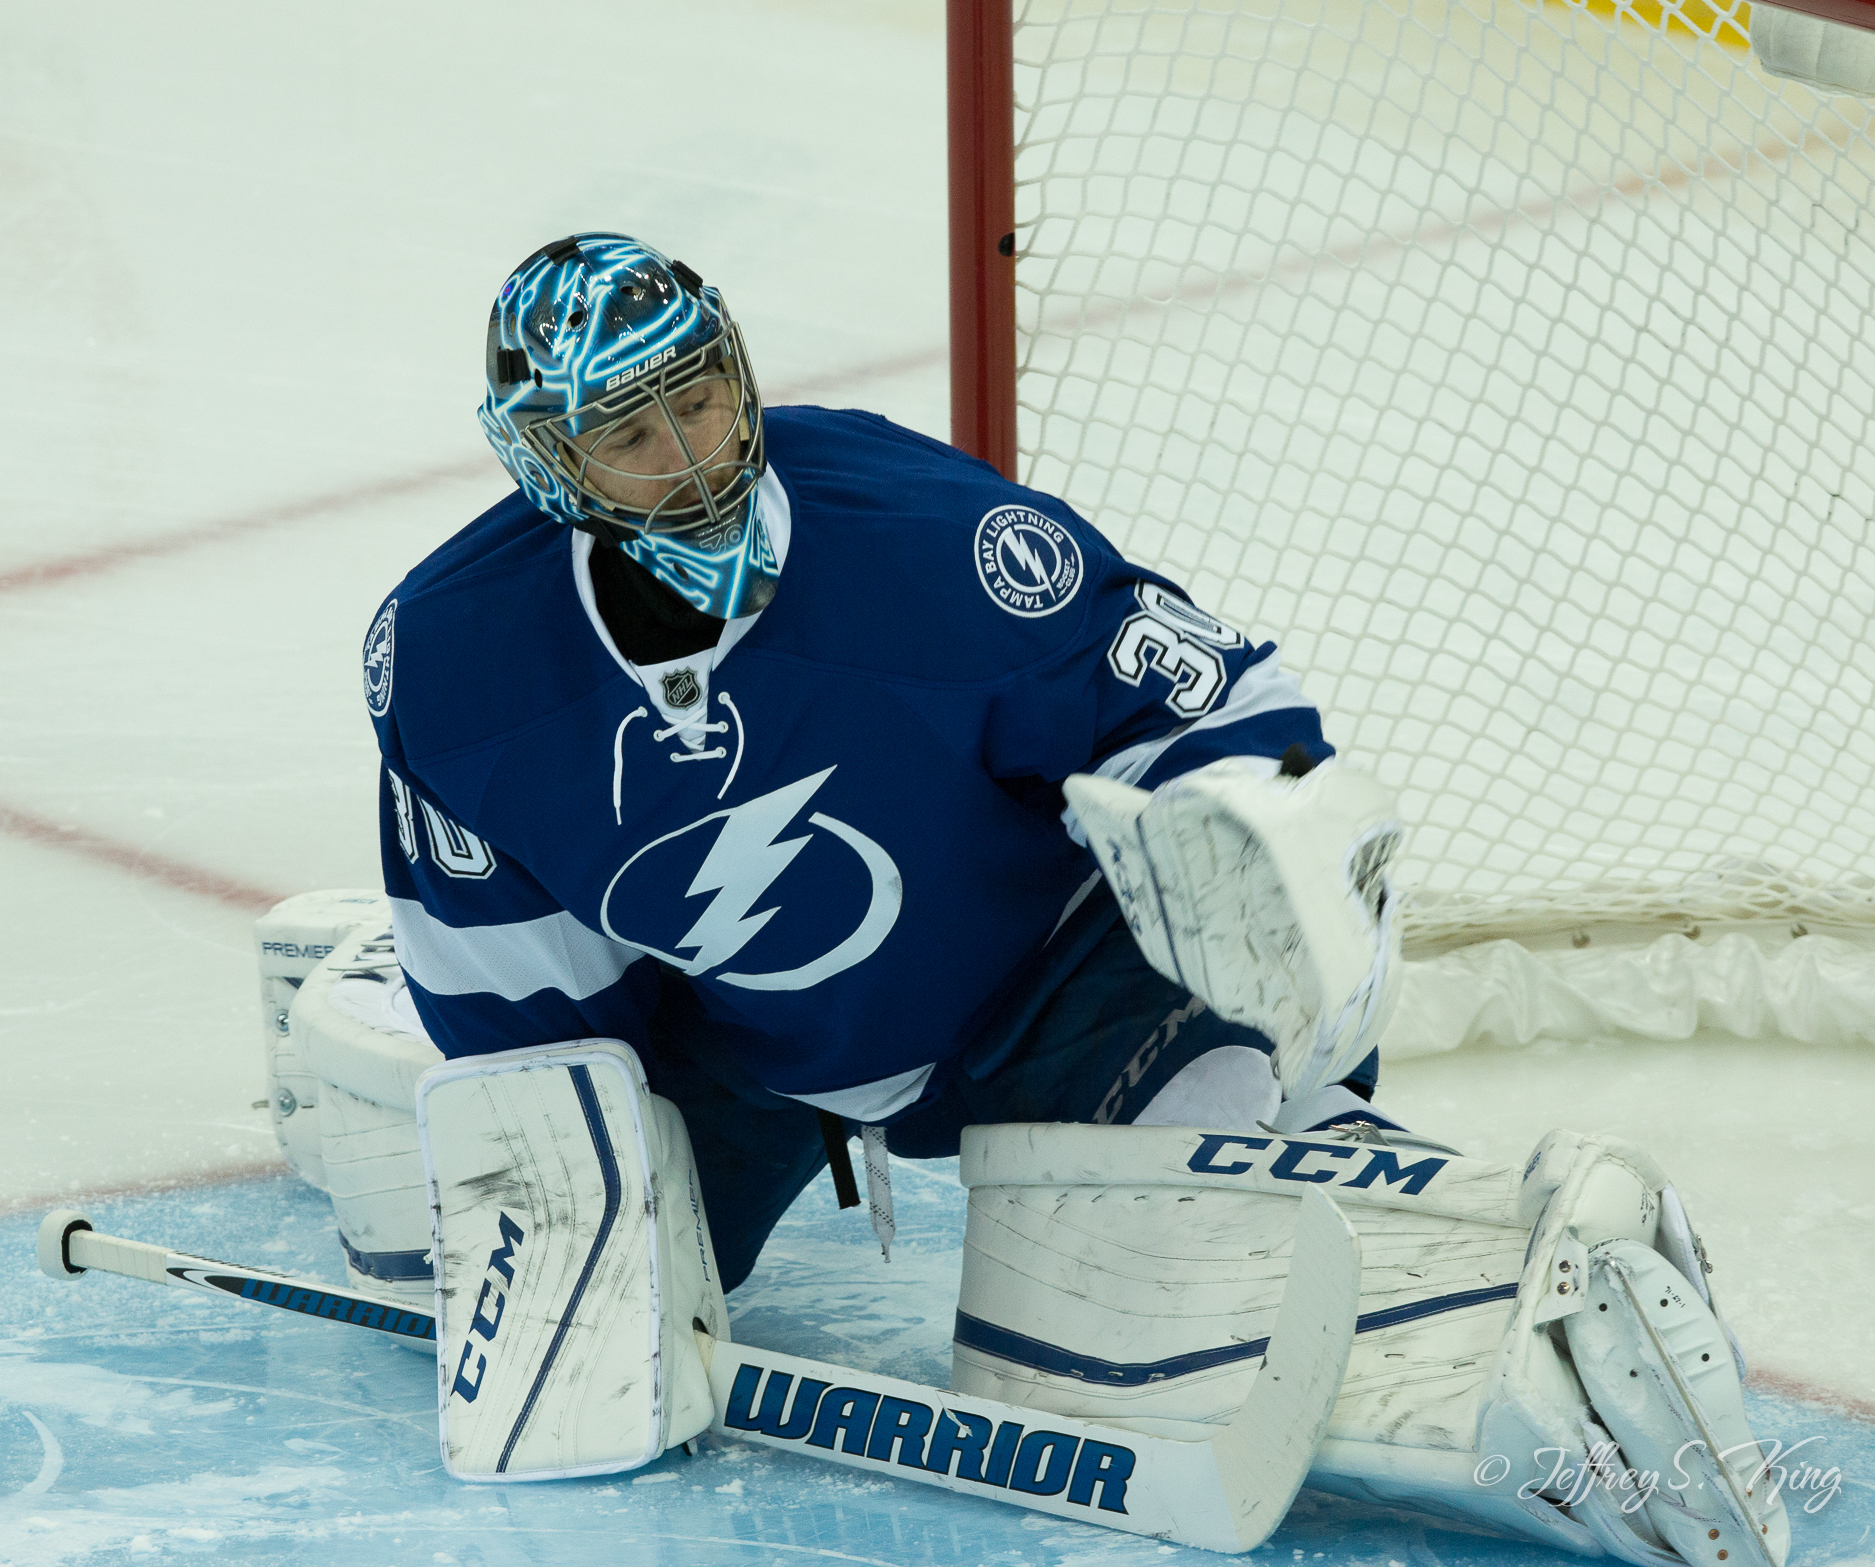 These days, Bishop has to be perfect for the Bolts to win,/ANDREW KRAMER